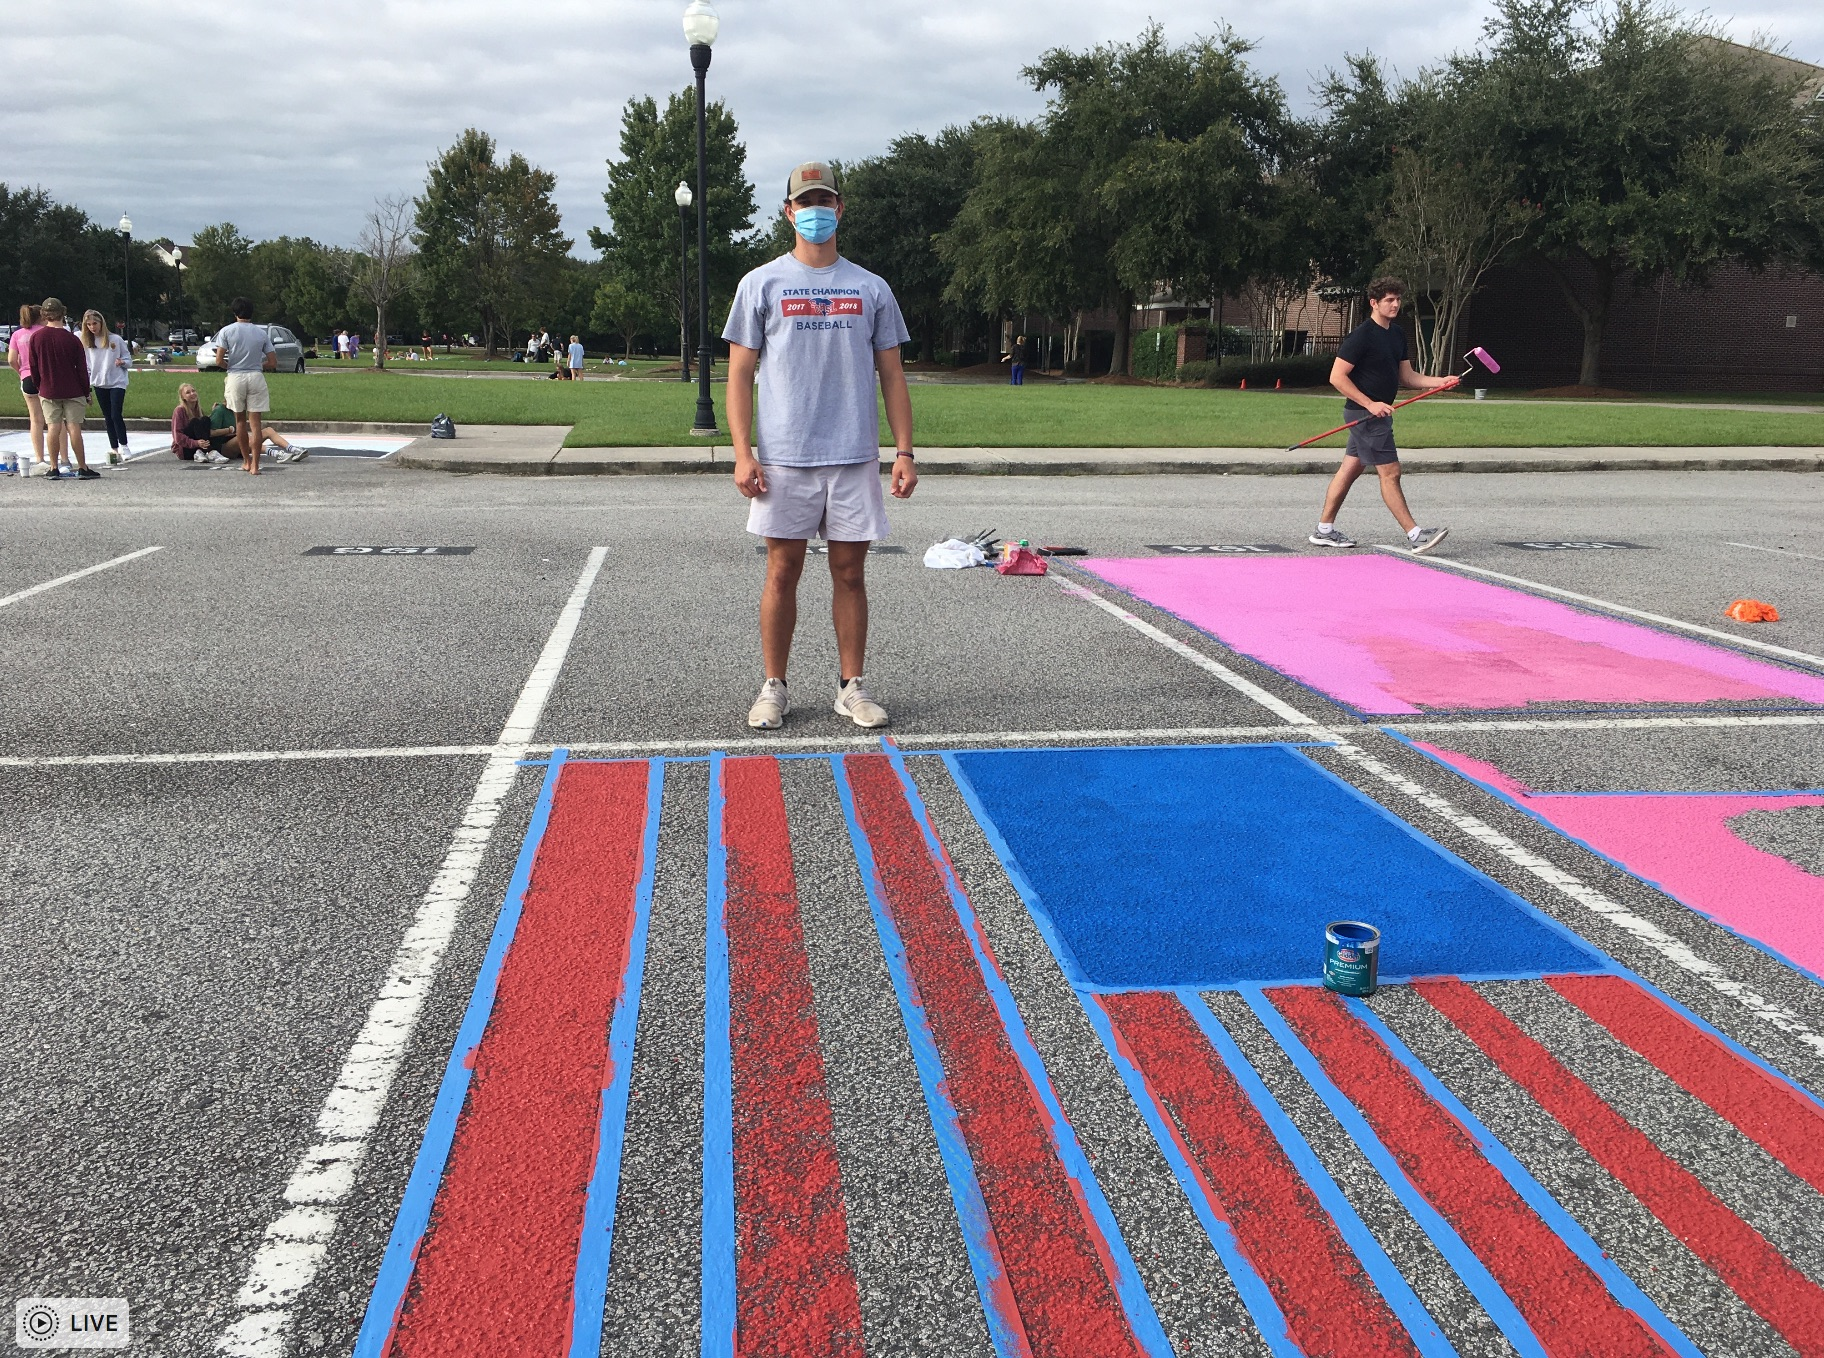 Chase Loggins, a 17-year old Bishop England senior who has committed to playing baseball for The Citadel, painted an American flag in honor of the country that he loves.